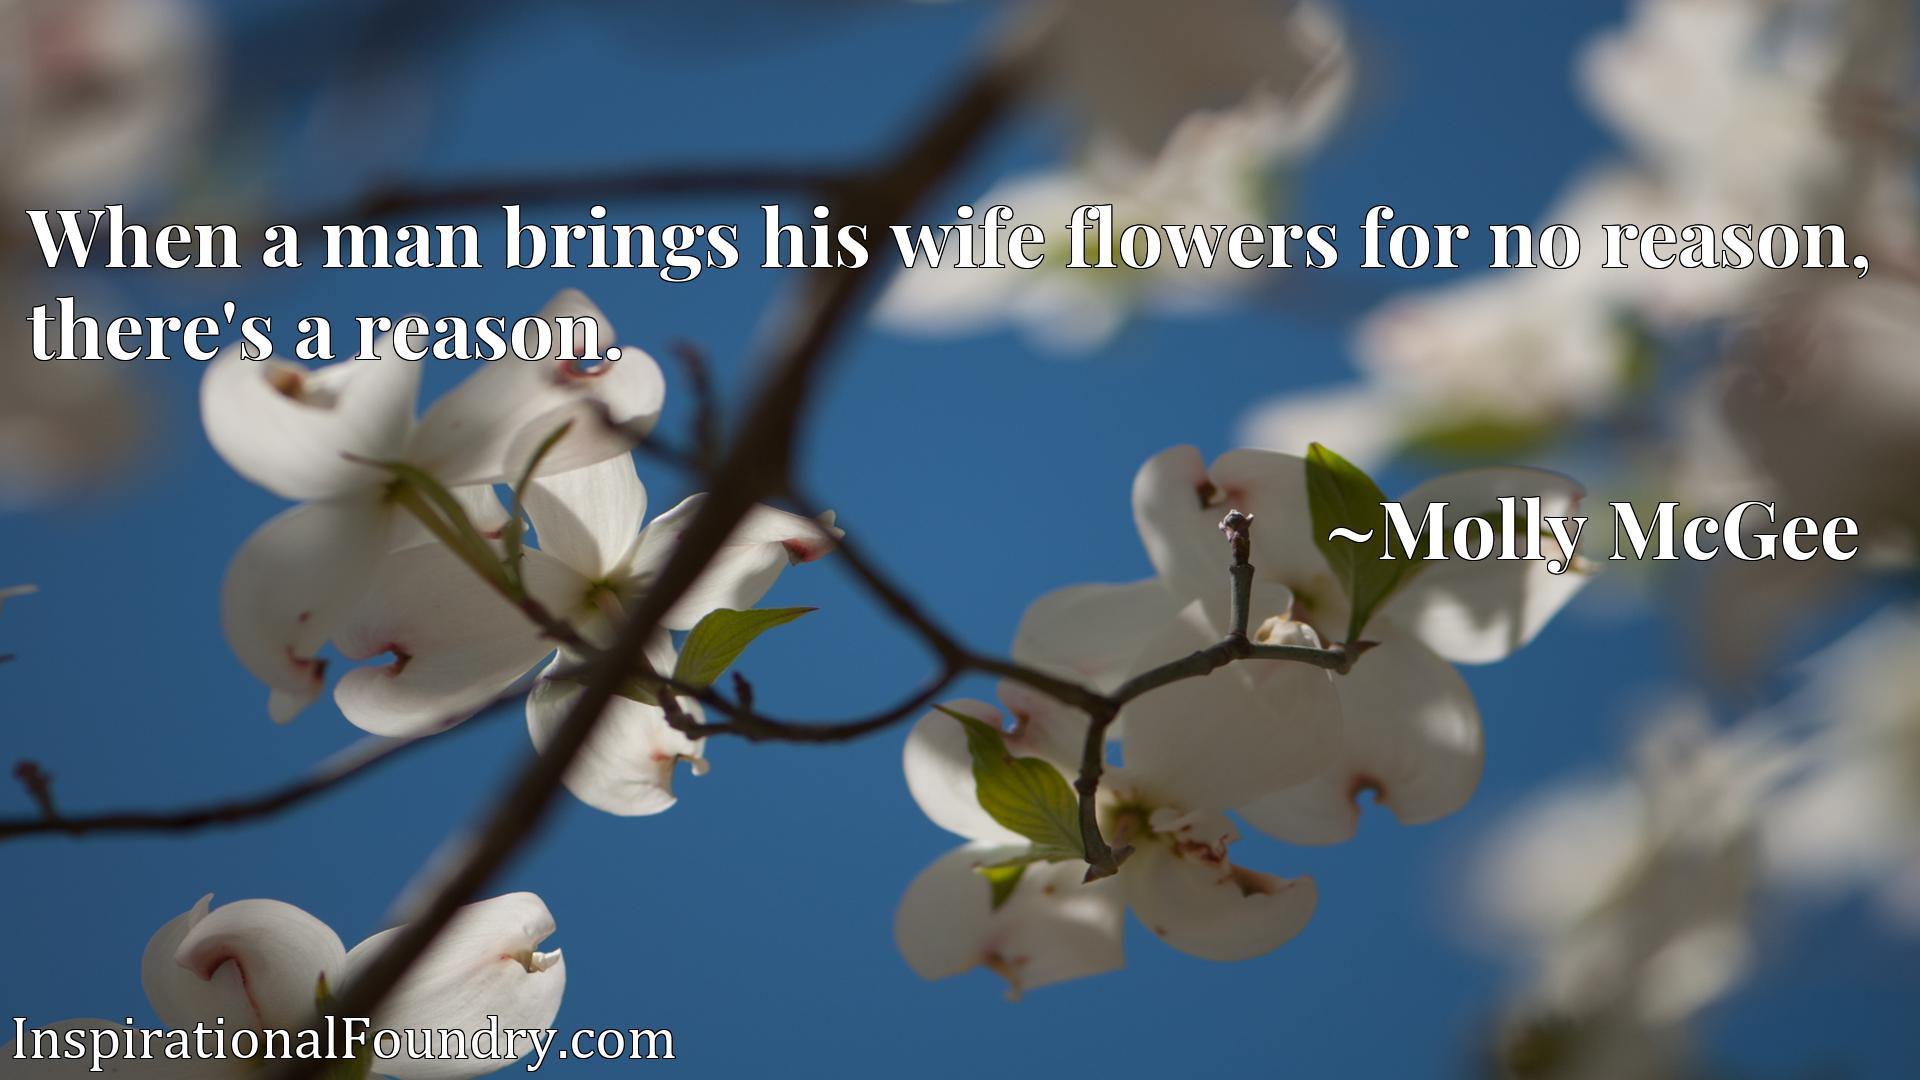 When a man brings his wife flowers for no reason, there's a reason.